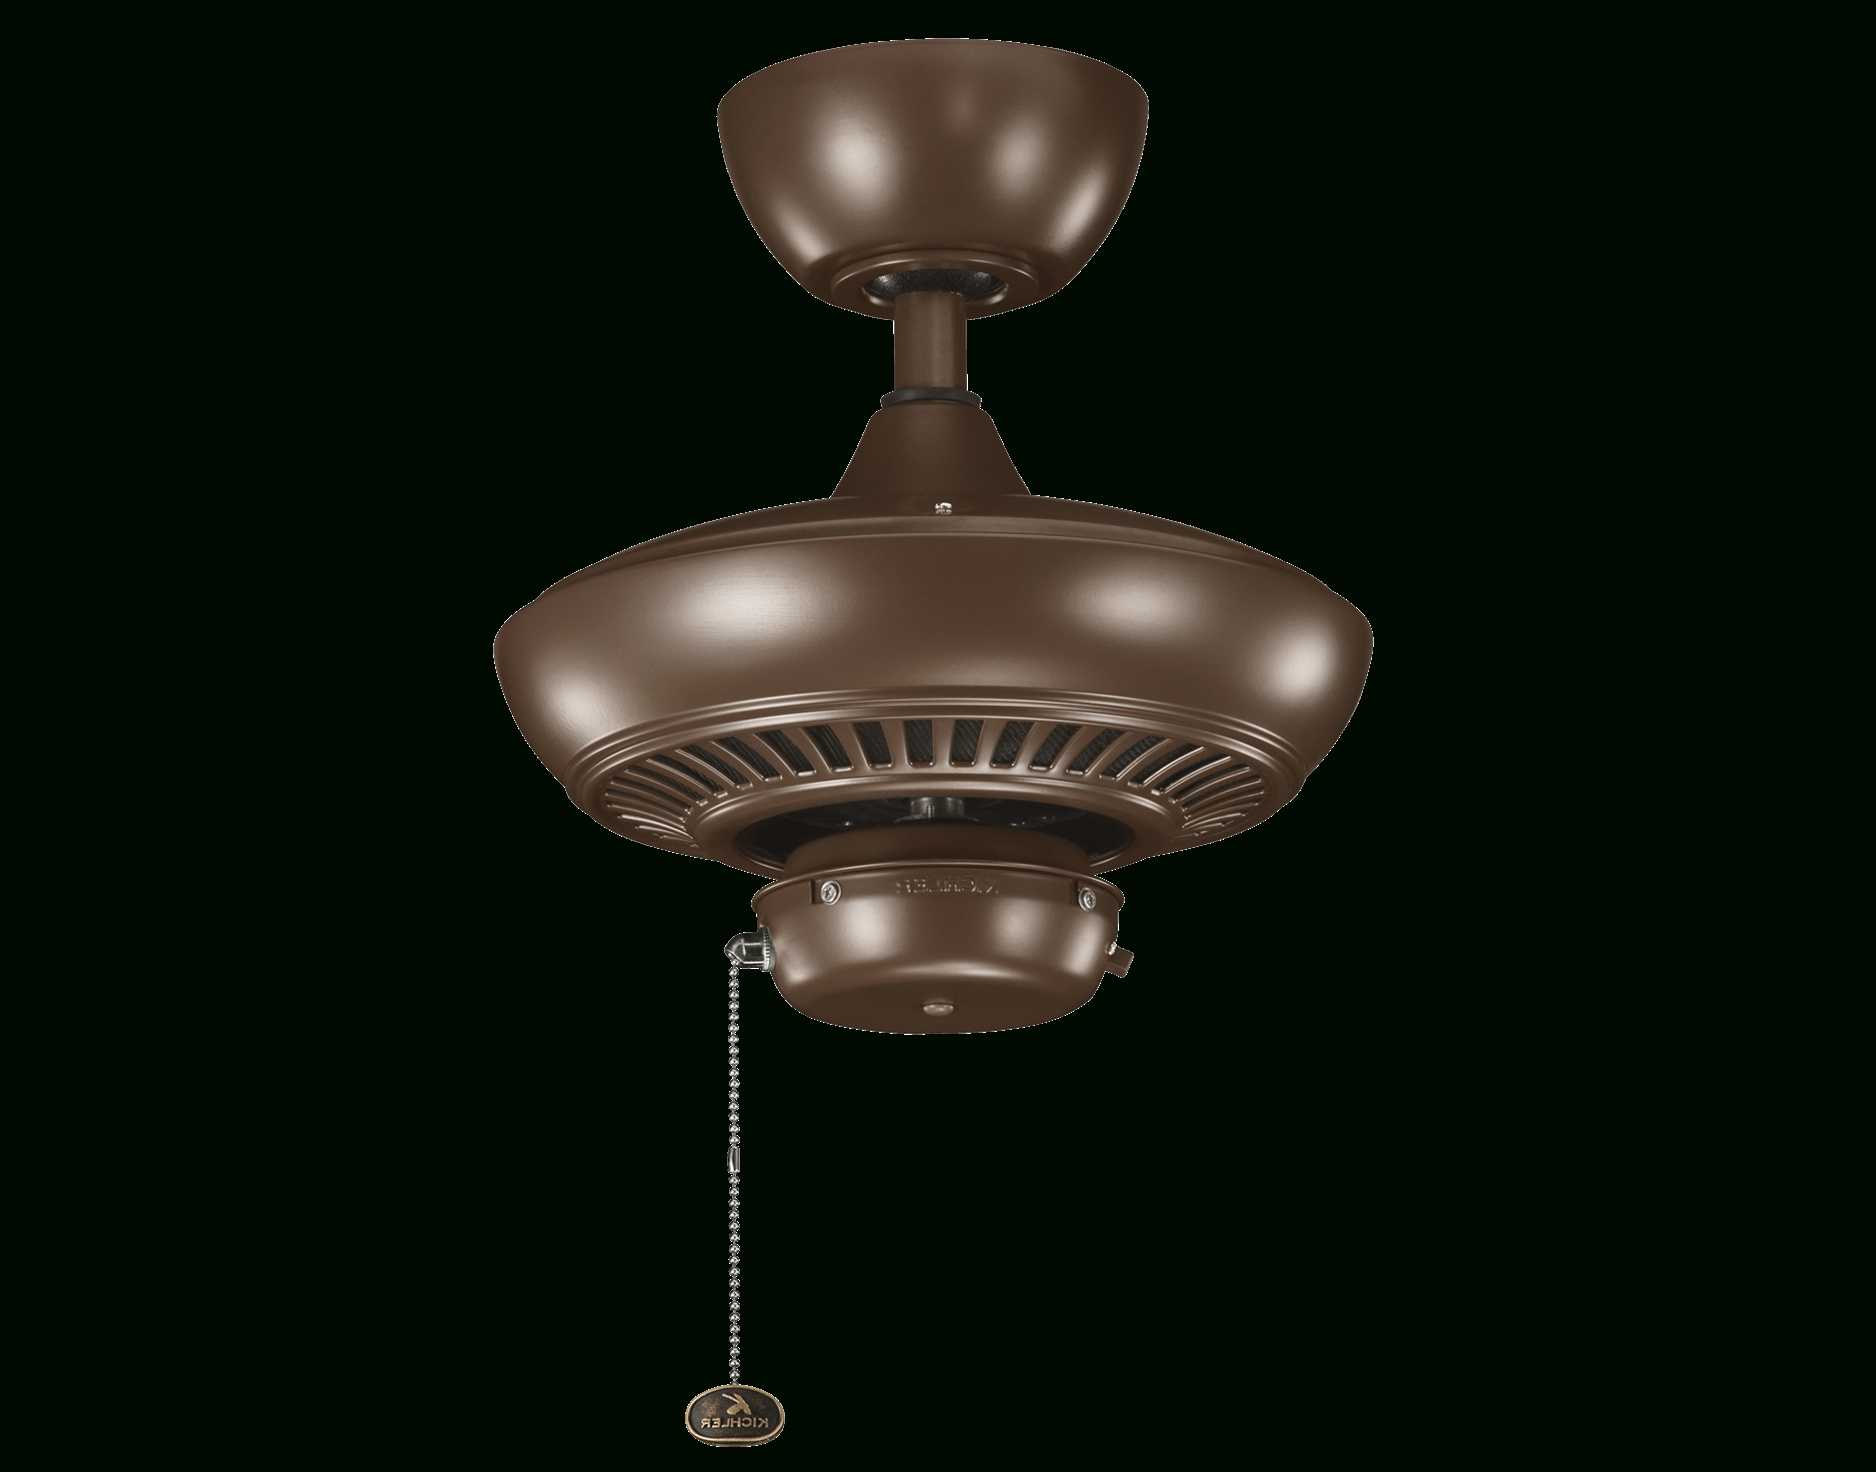 Awesome Outdoor Ceiling Light With Pull Chain – Divineducation Pertaining To Most Popular Outdoor Ceiling Fans With Pull Chain (Gallery 19 of 20)